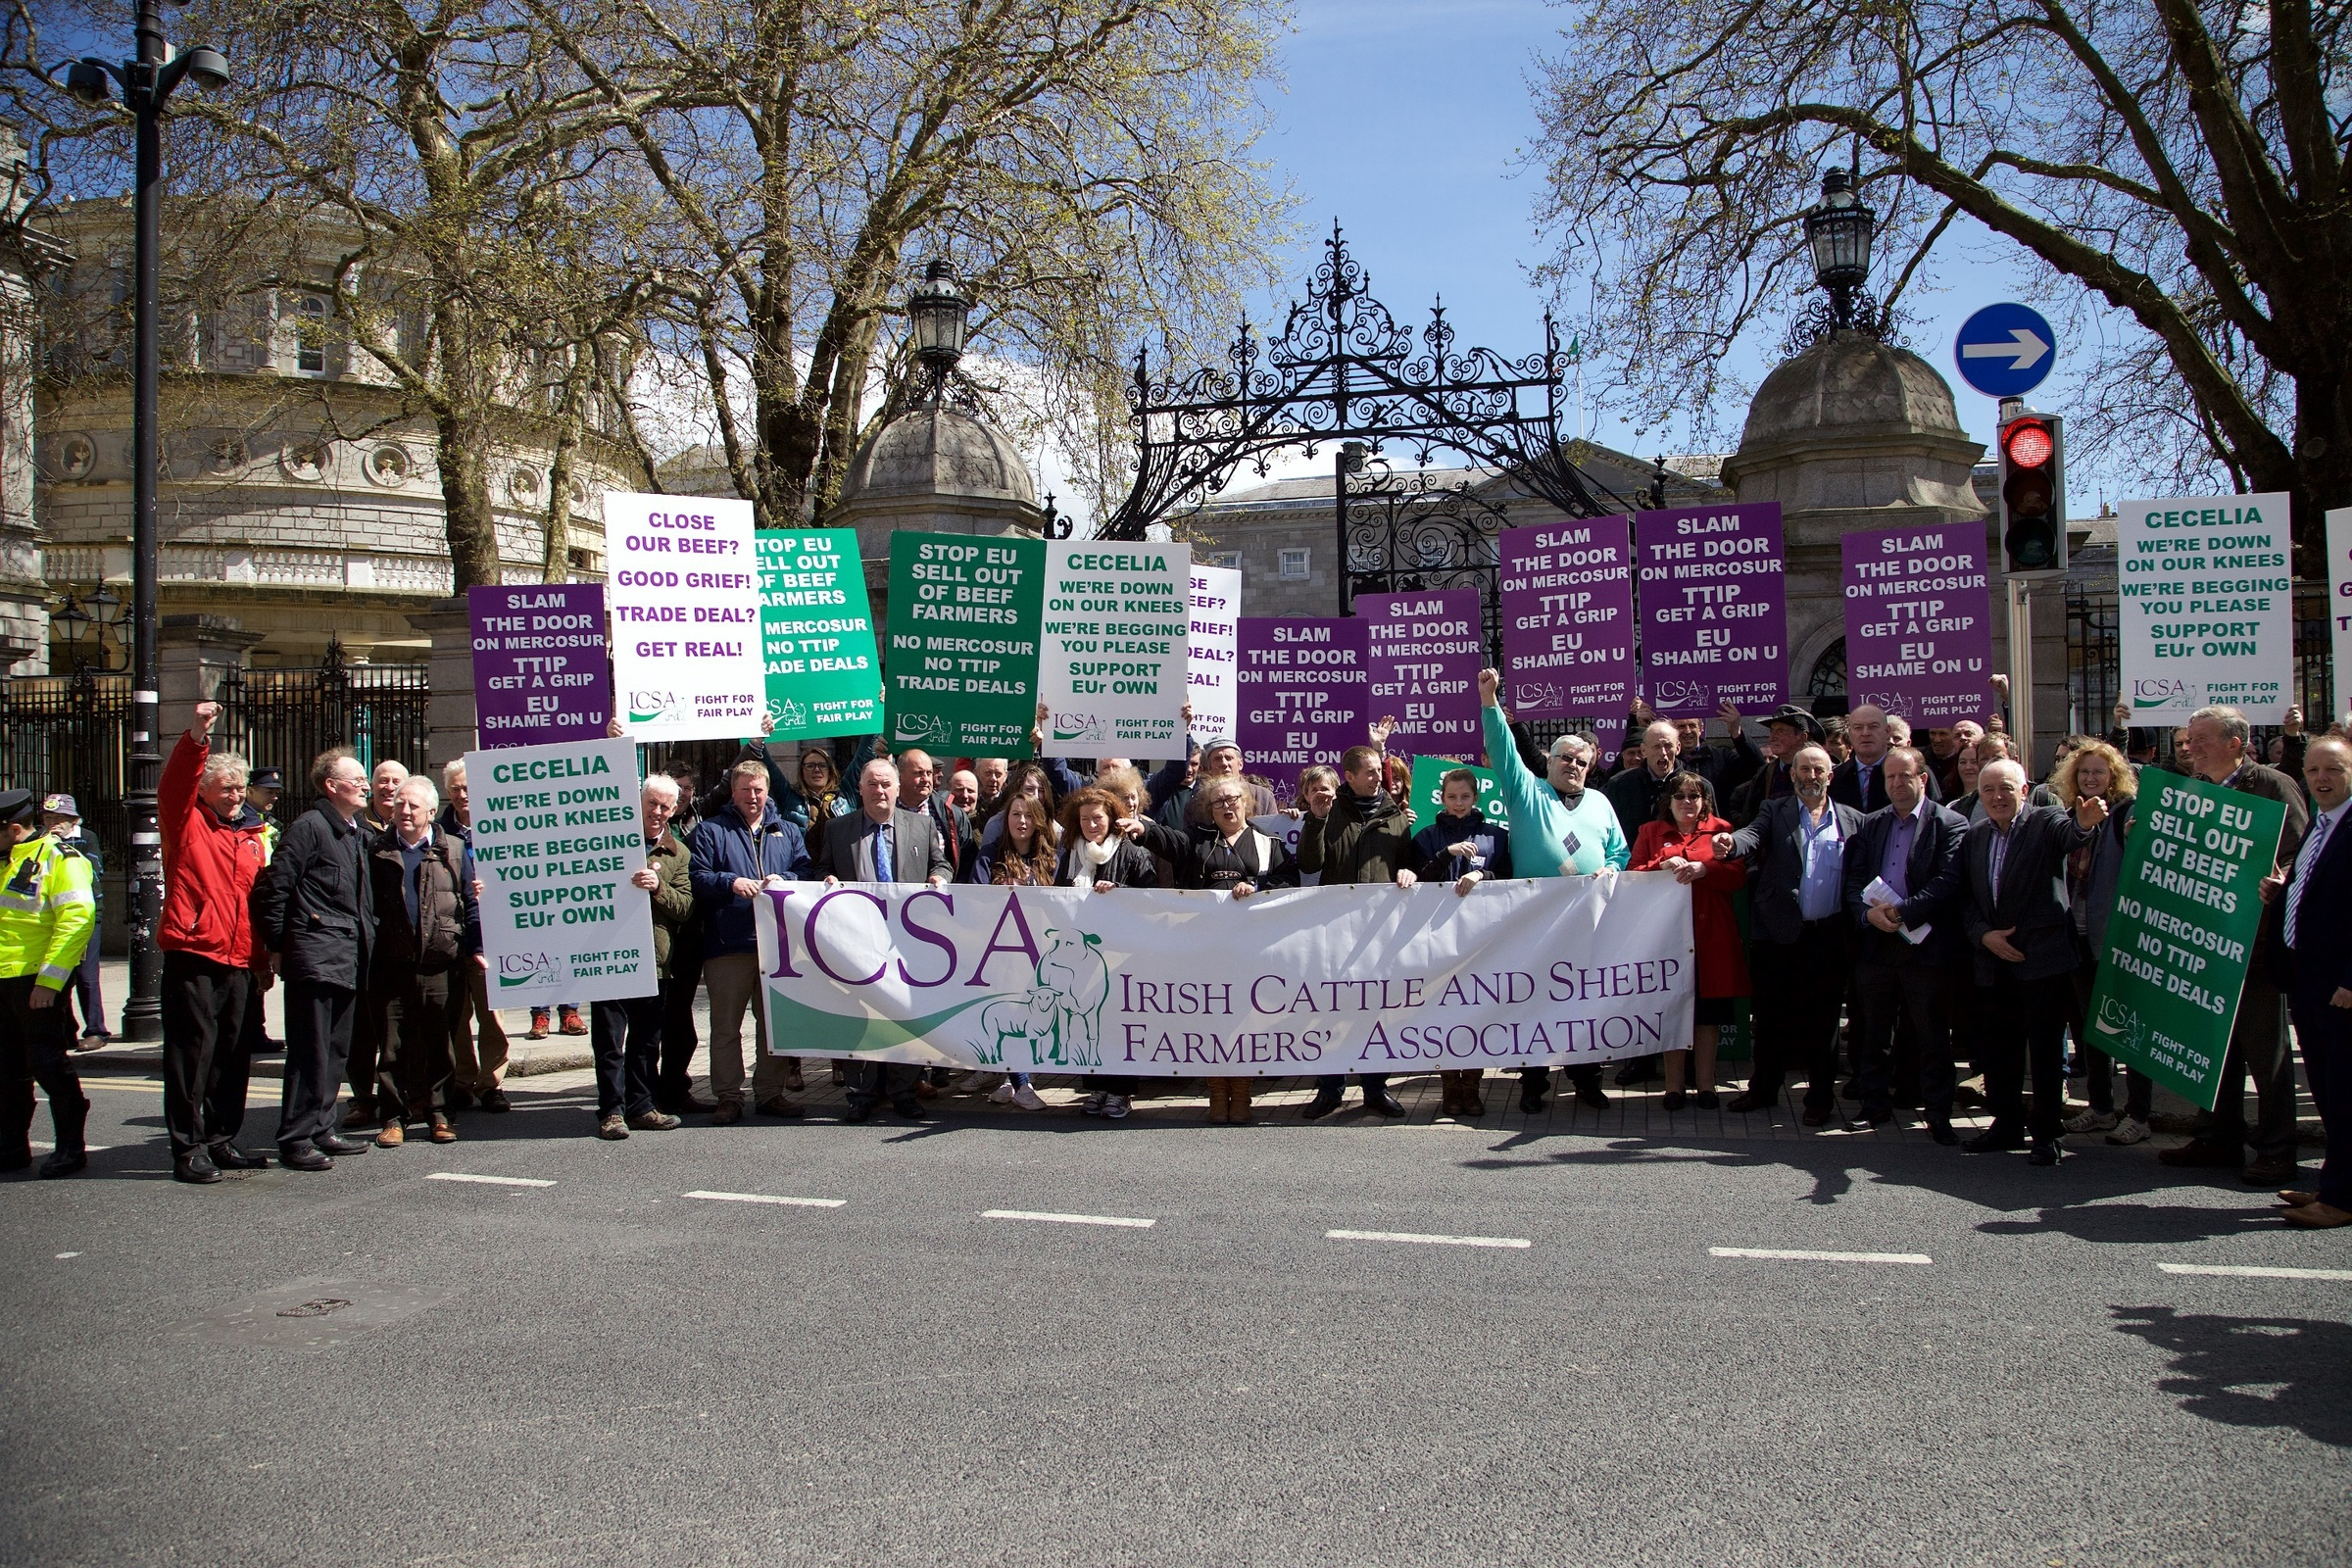 ICSA to protest today against Mercosur and TTIP trade deals